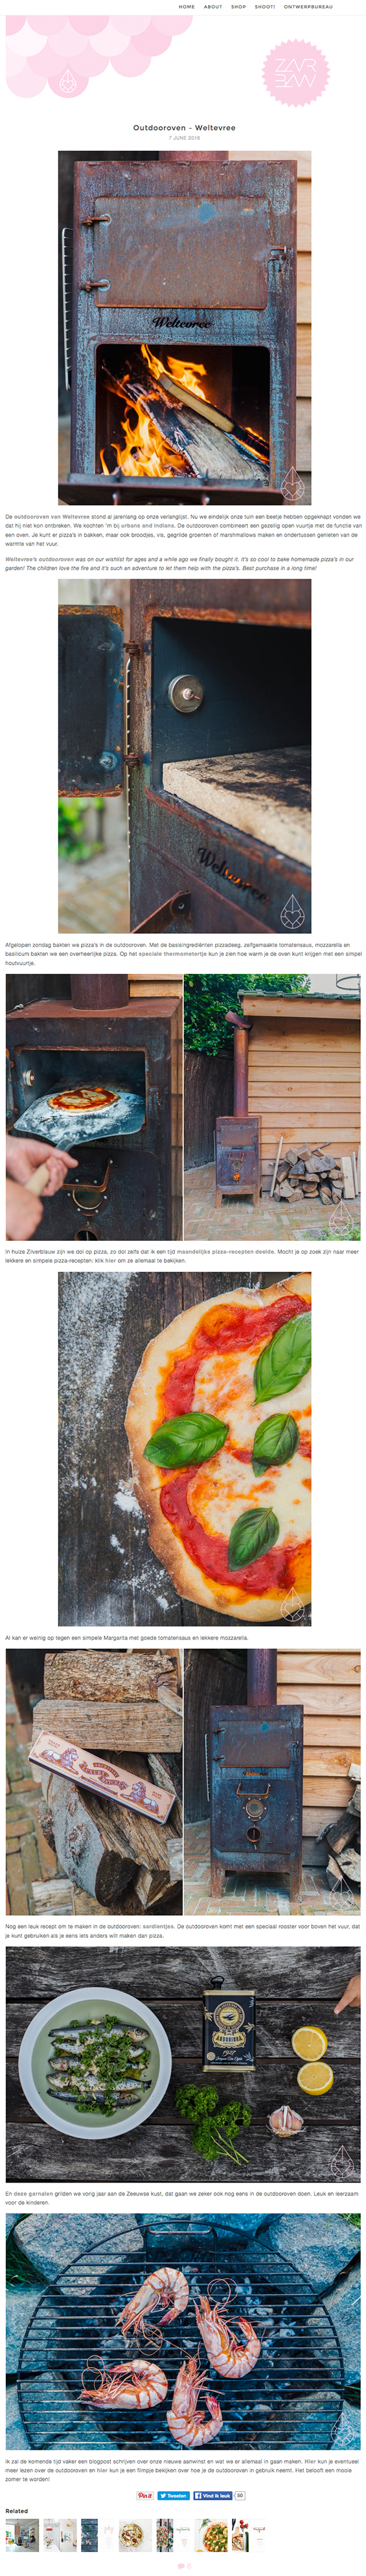 Outdooroven_blog_Zilverblauw_urbans_and_indians.jpg